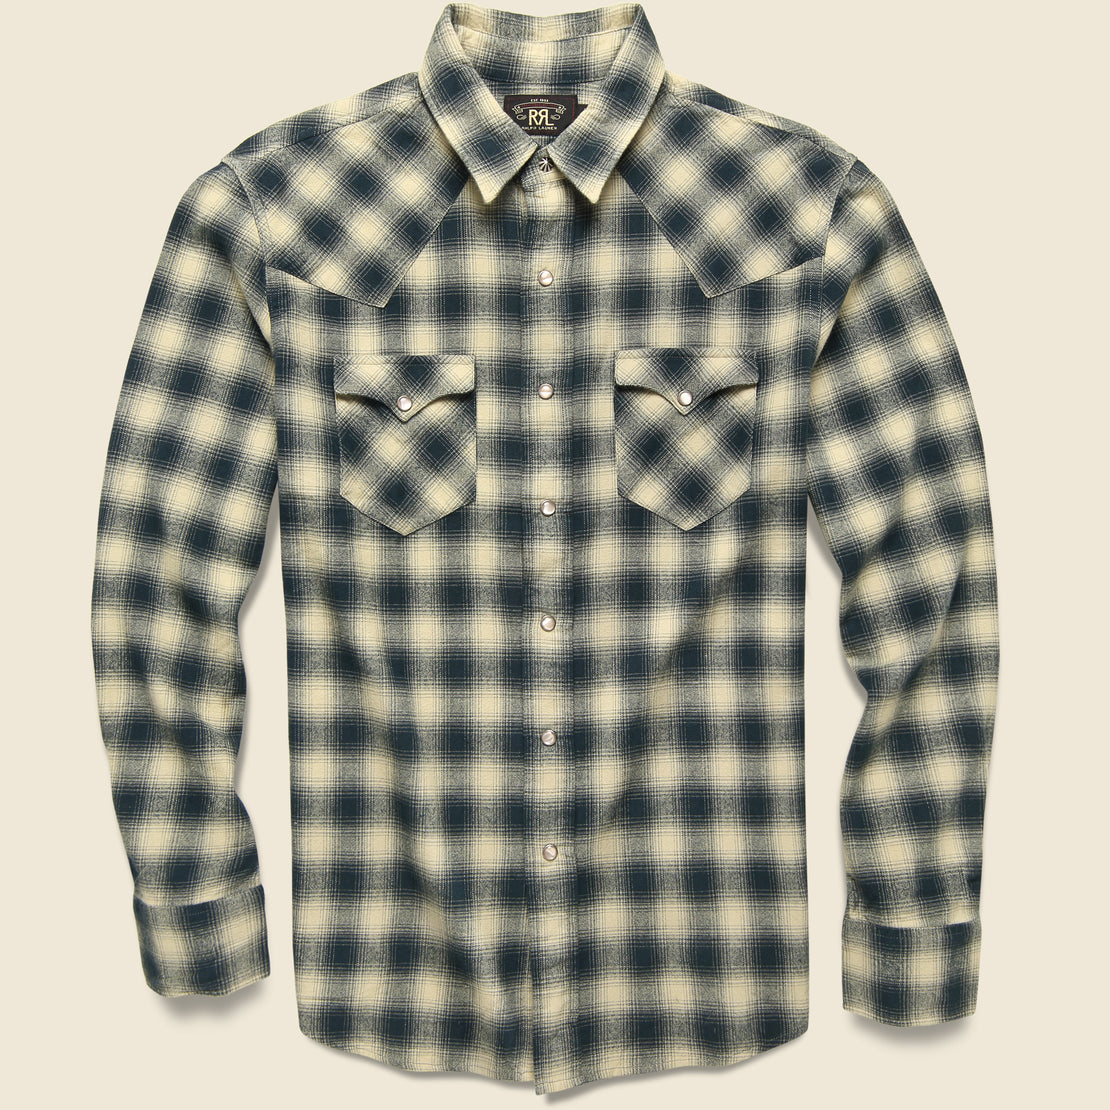 RRL Slim Fit Plaid Brushed Western Shirt - Cream/Grey